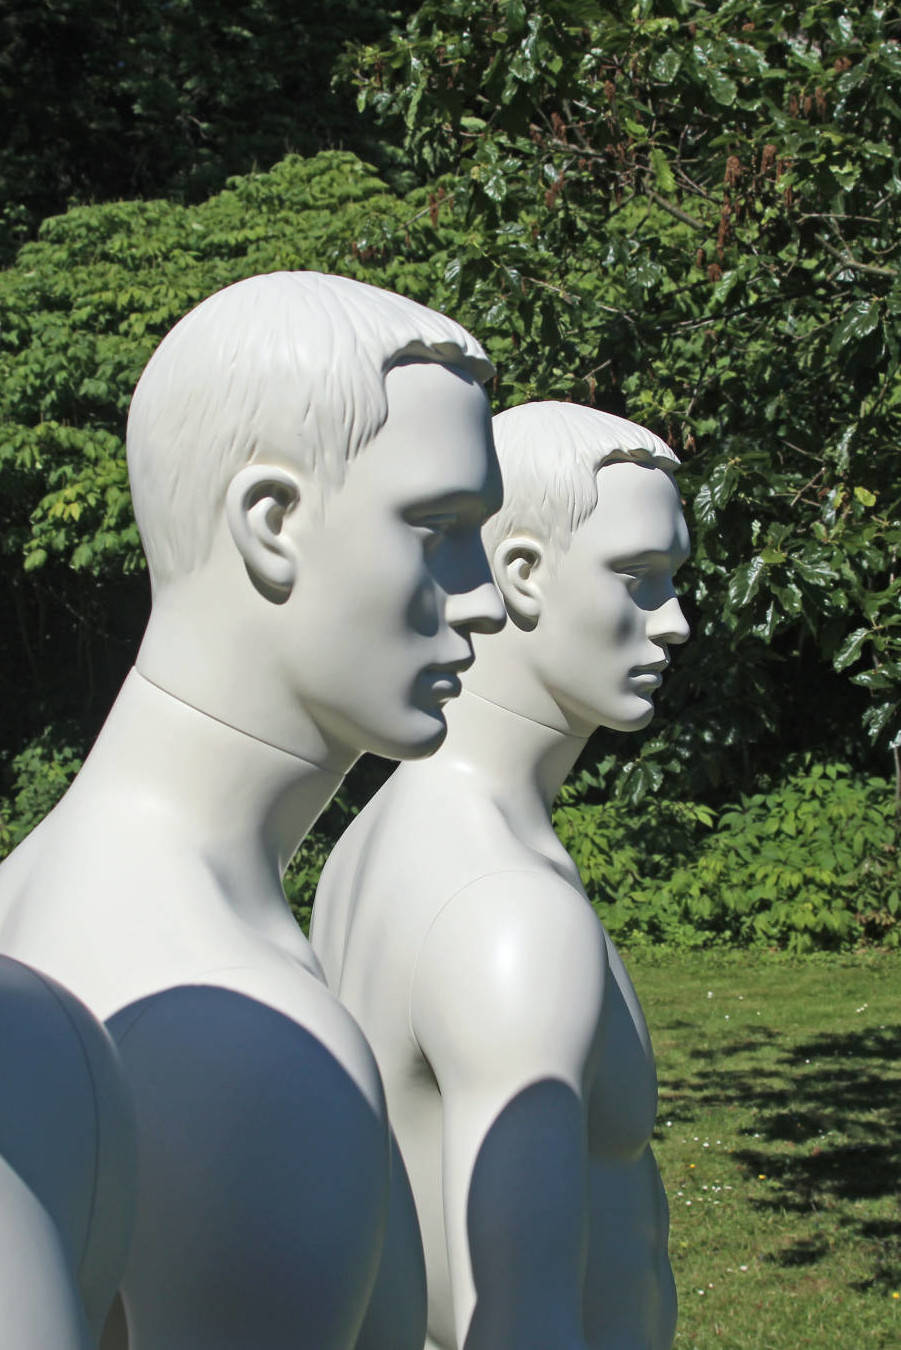 Stylized mannequins in nature